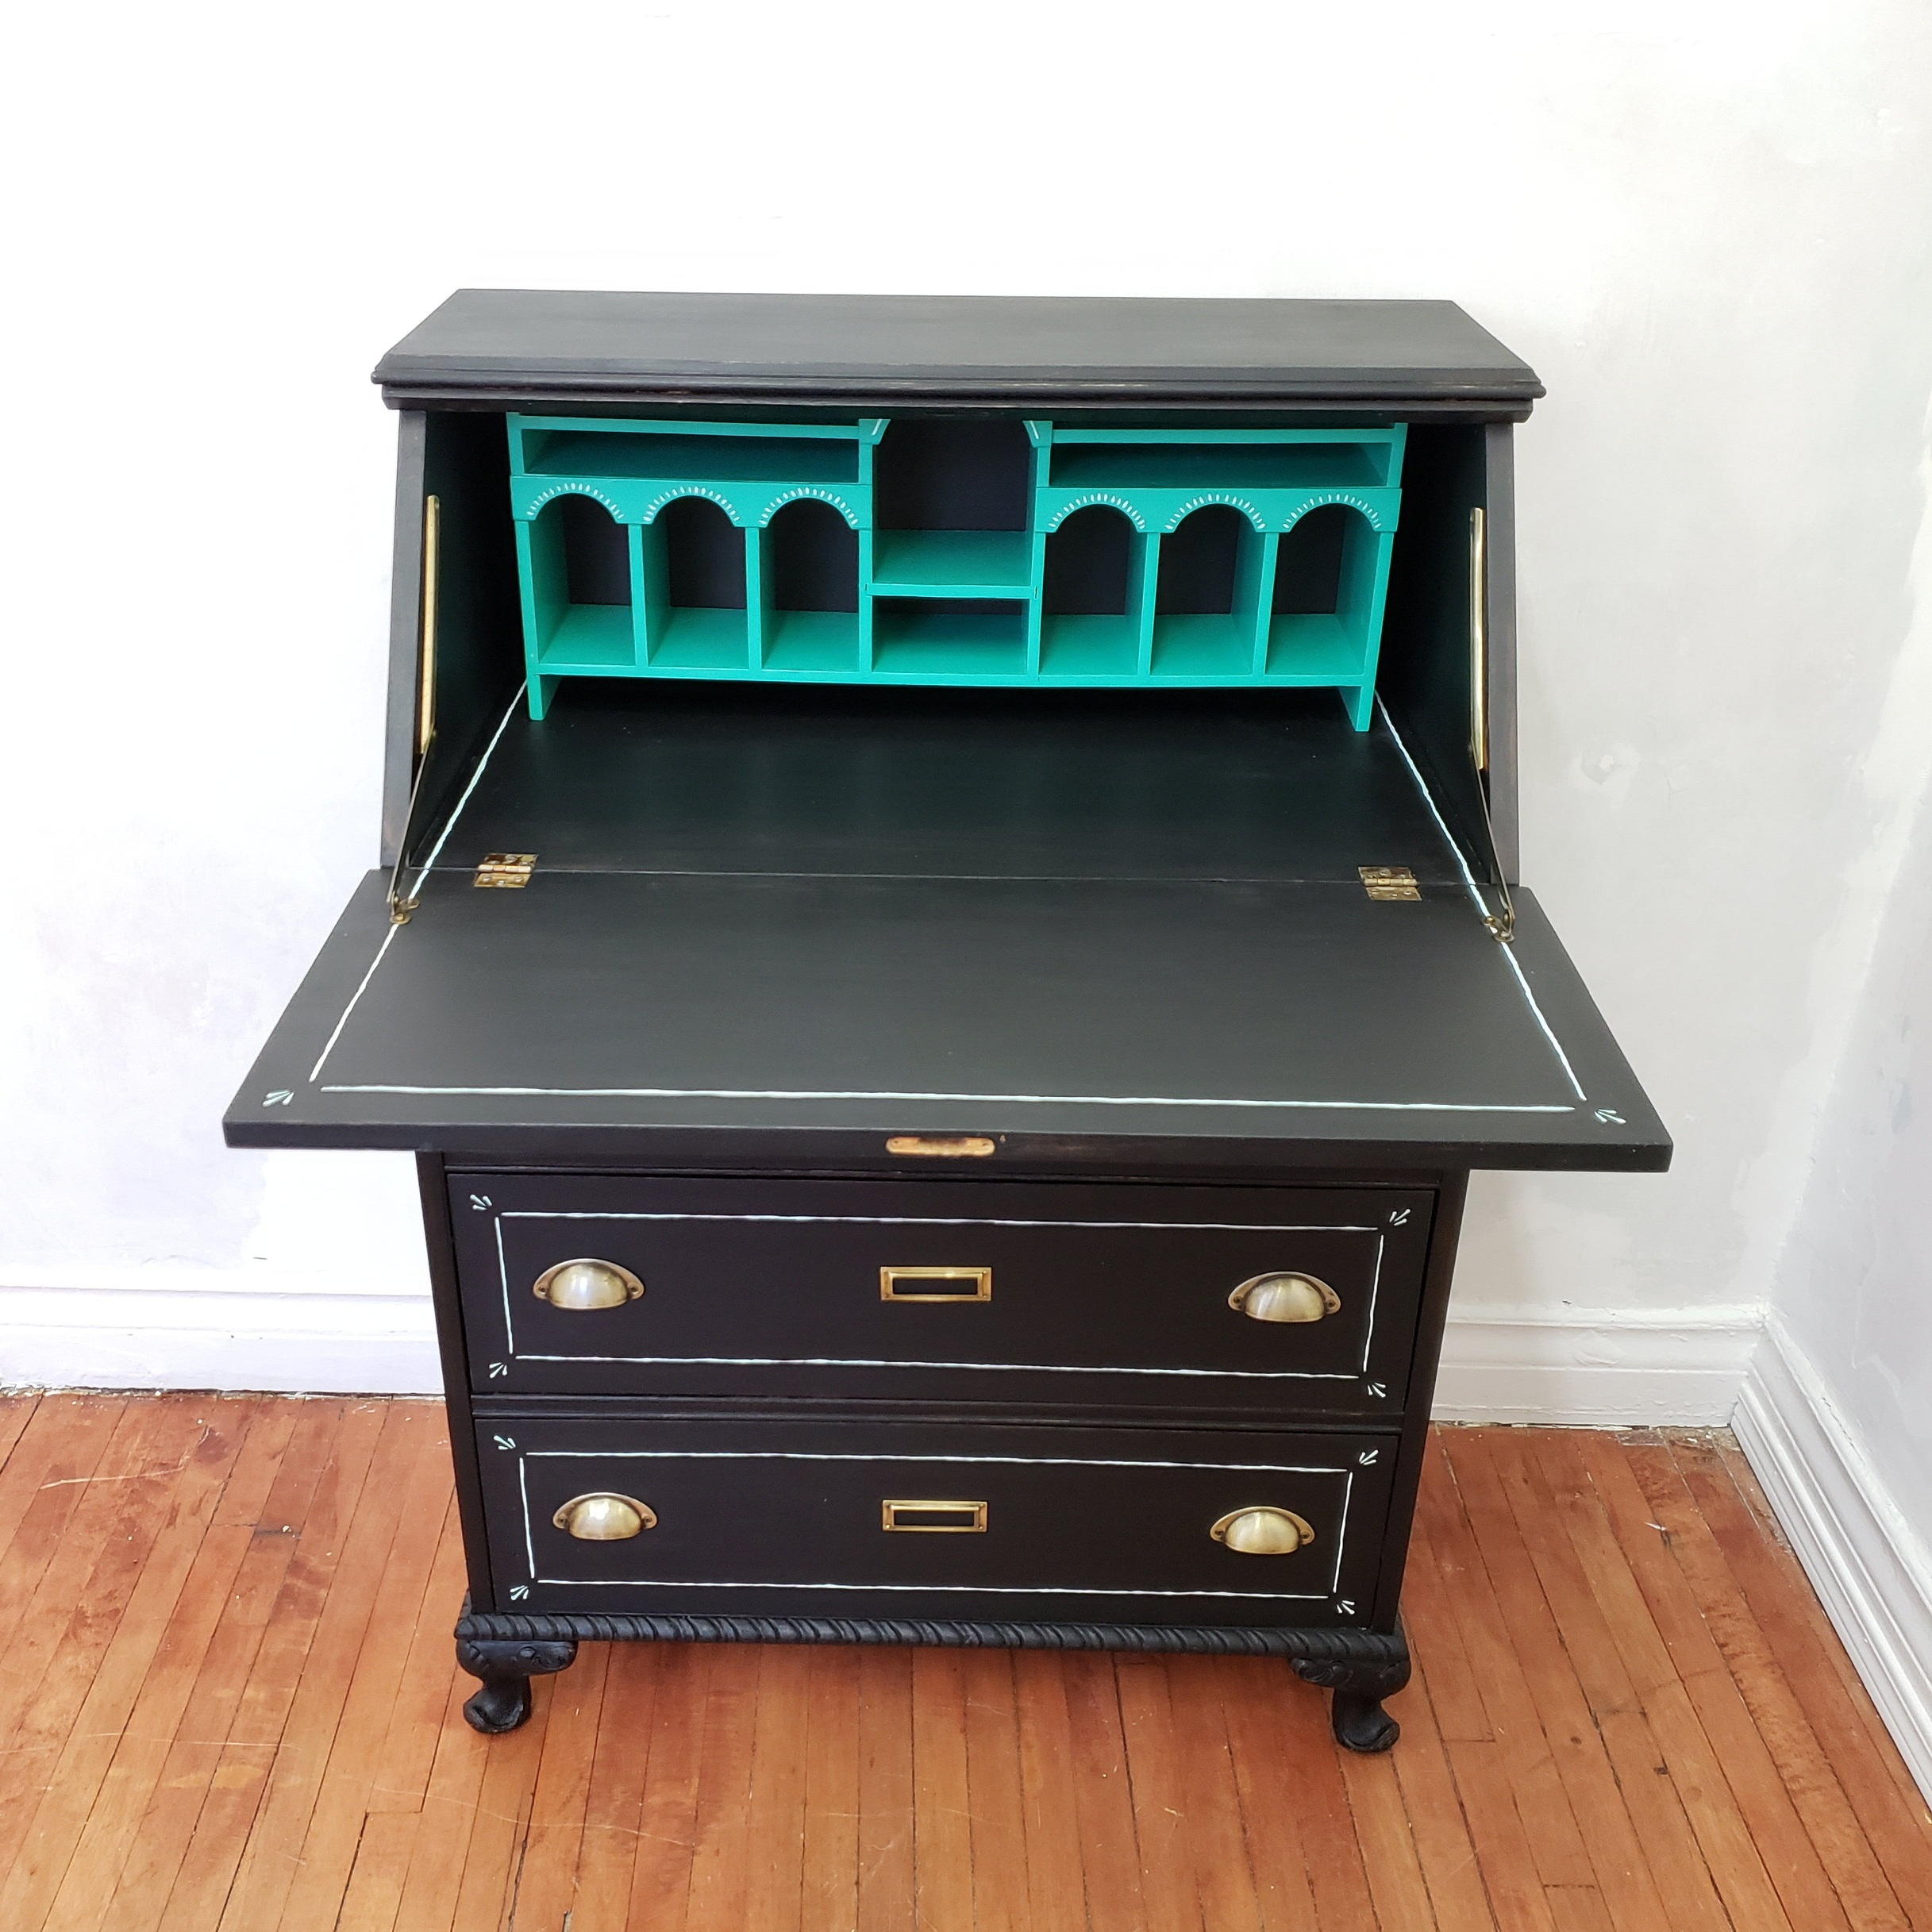 Gorgeous transformation with mineral paint and new hardware.